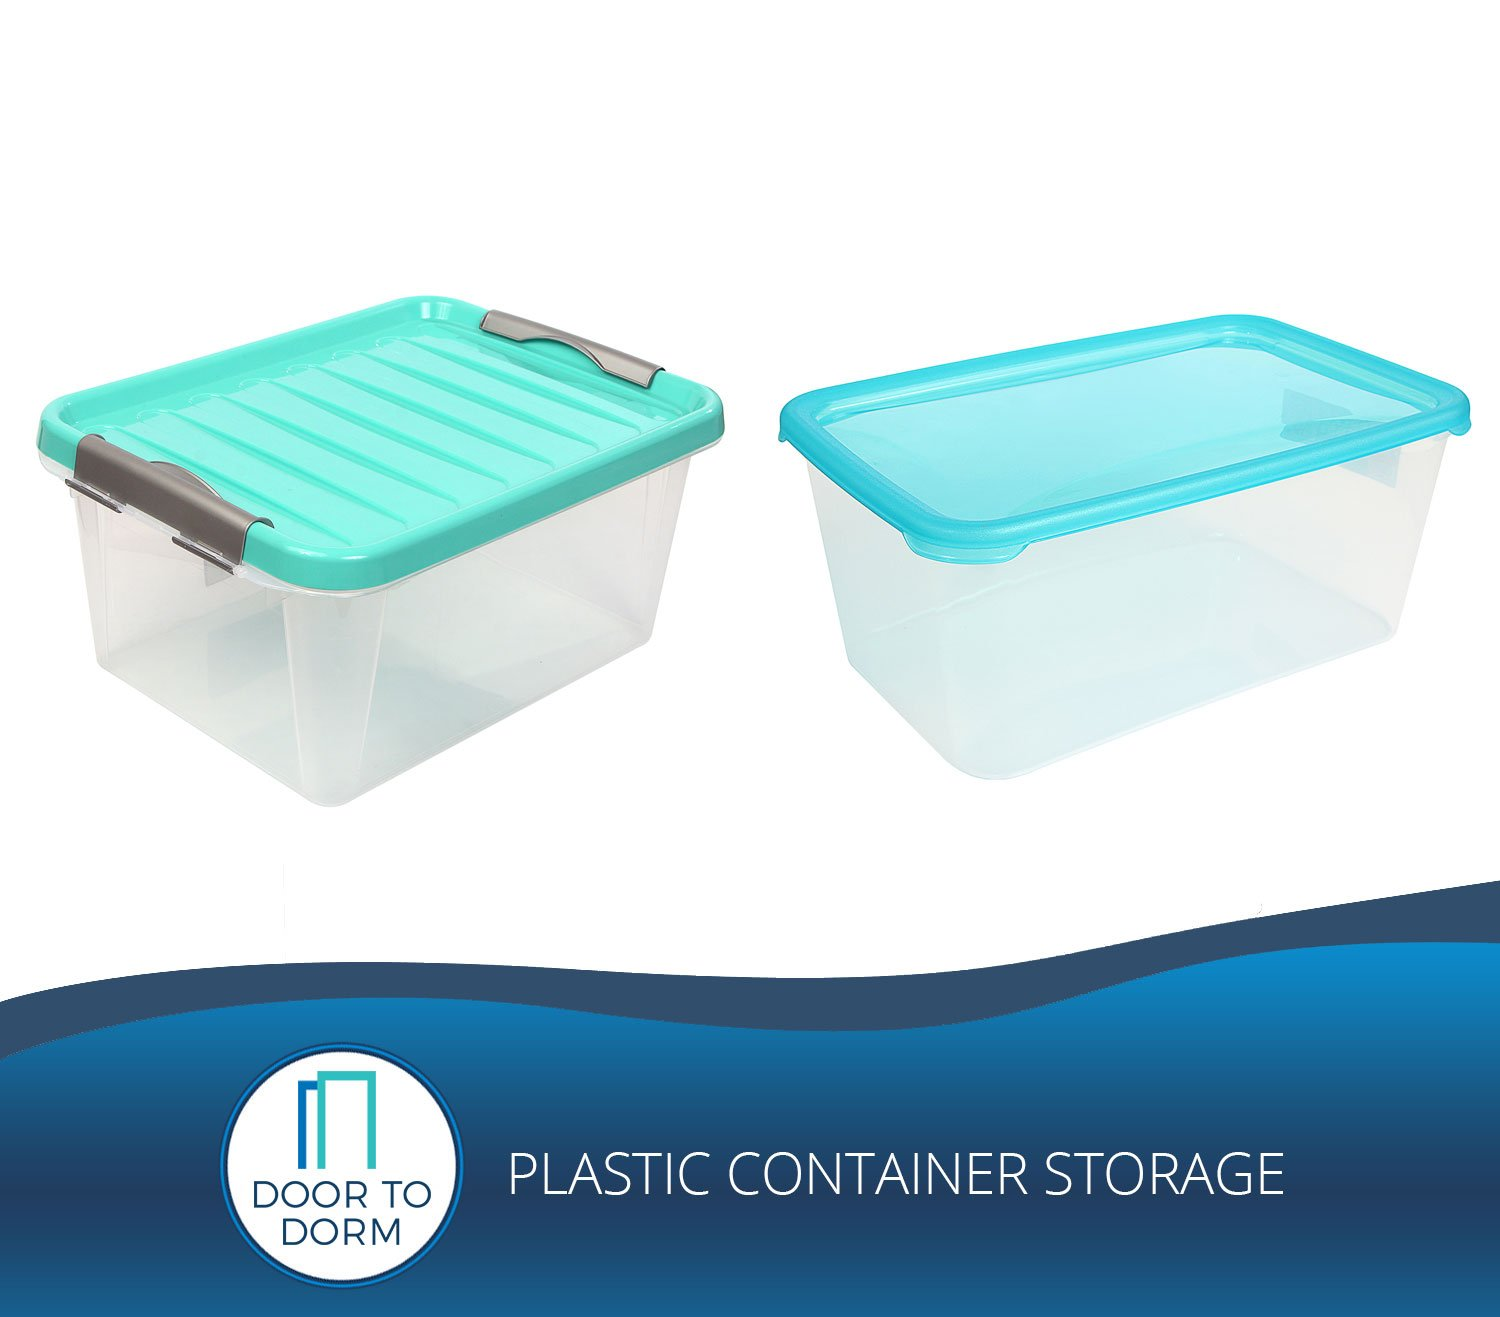 Plastic Container Storage Door to Dorm